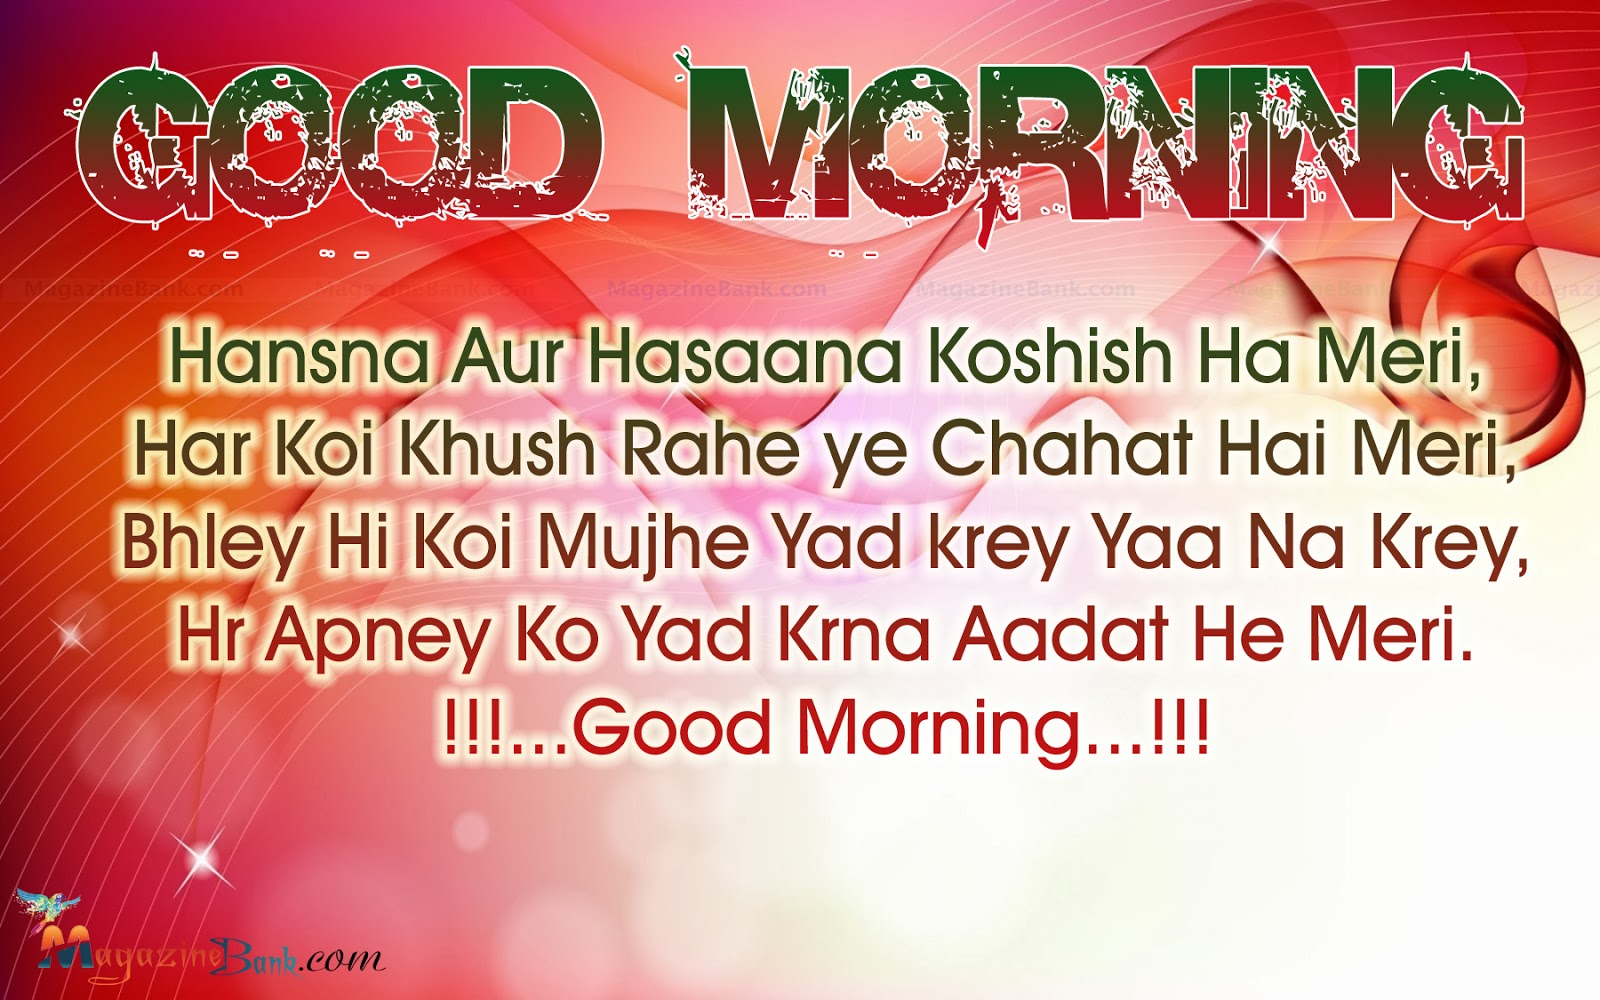 Good Morning Sweet Sms : Good morning quotes cute quotesgram